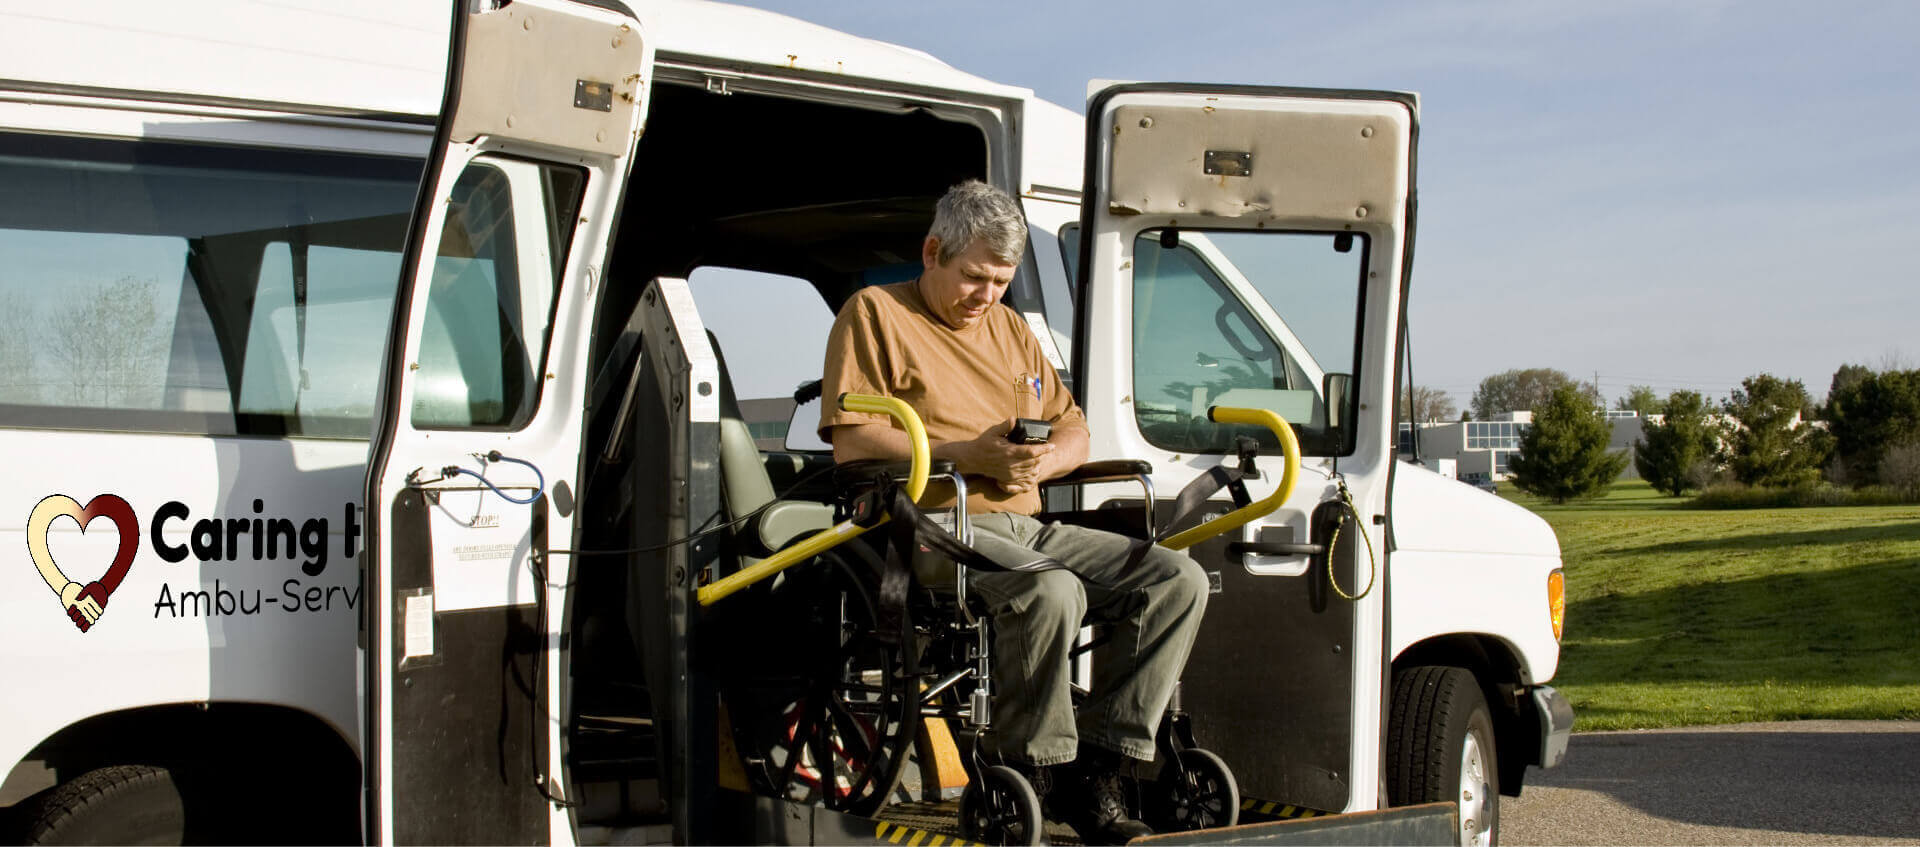 man on wheelchair exiting a van